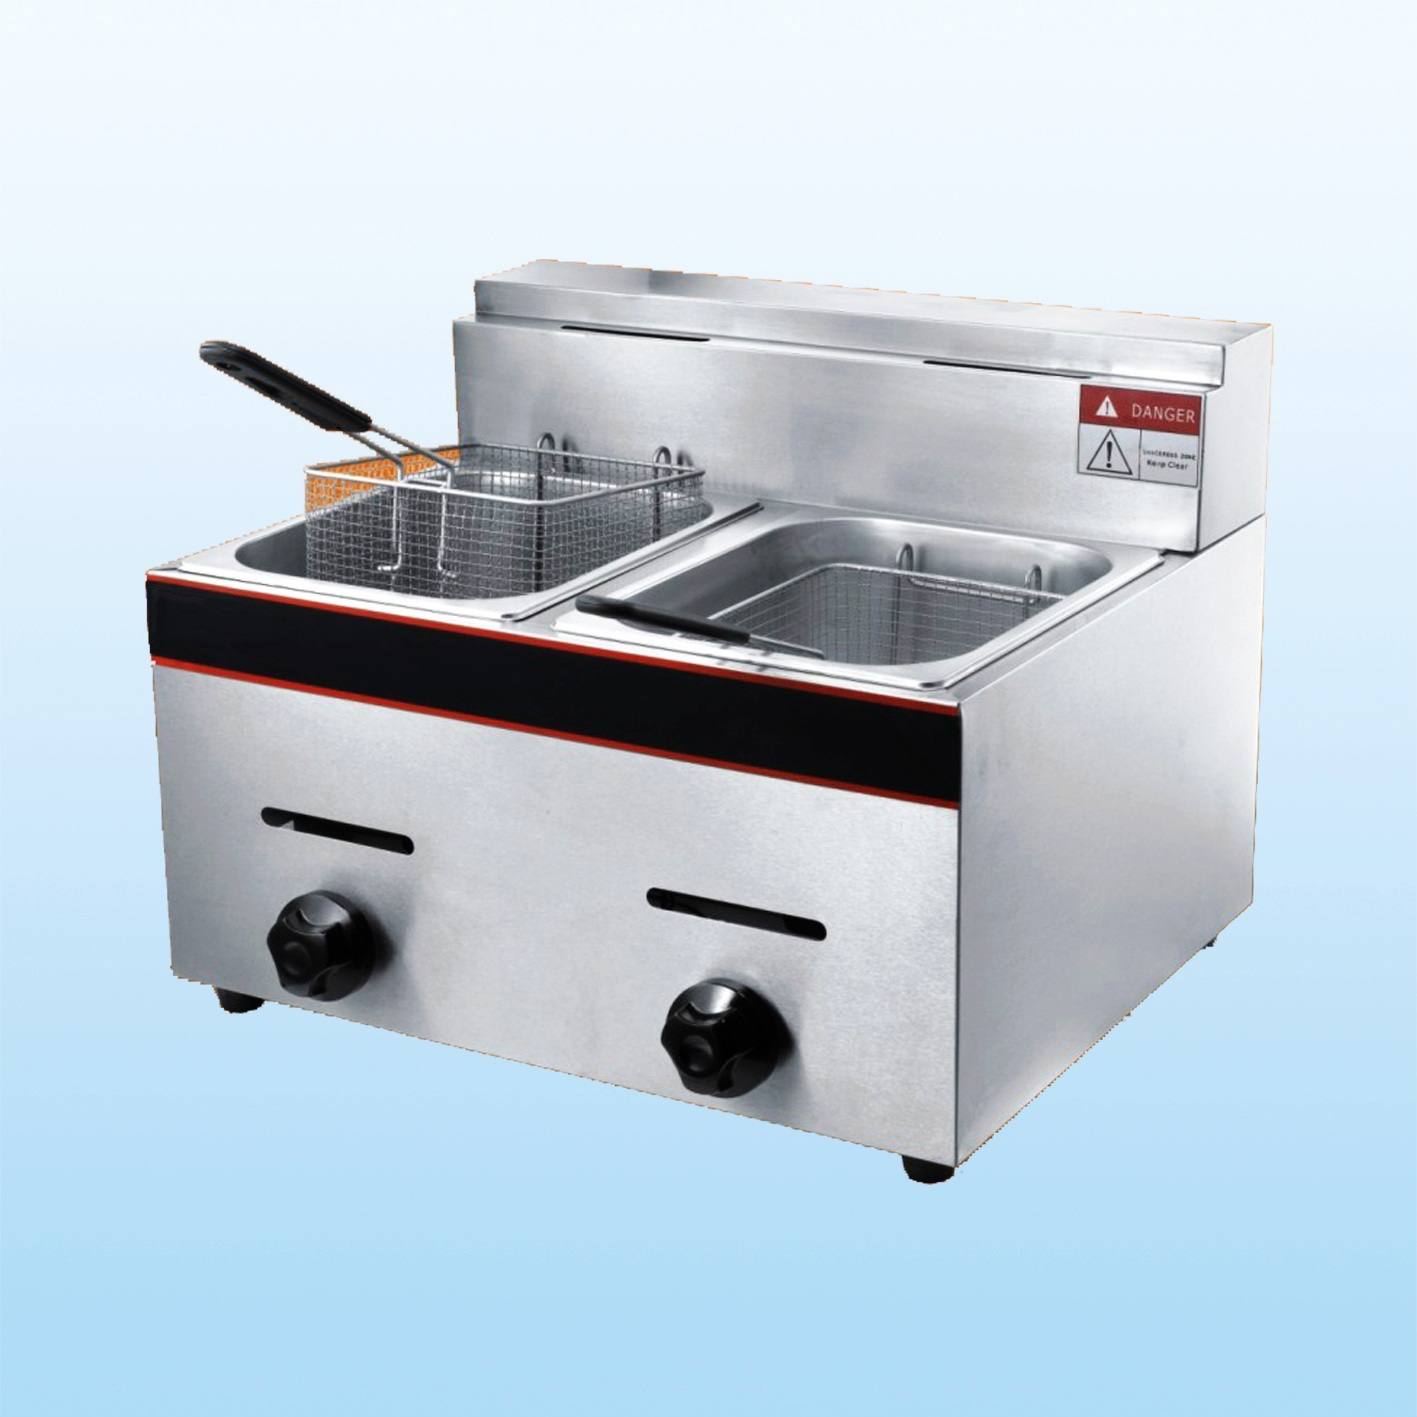 China Gas Fryer (DF-72) - China Gas Fryer, Deep Fryer